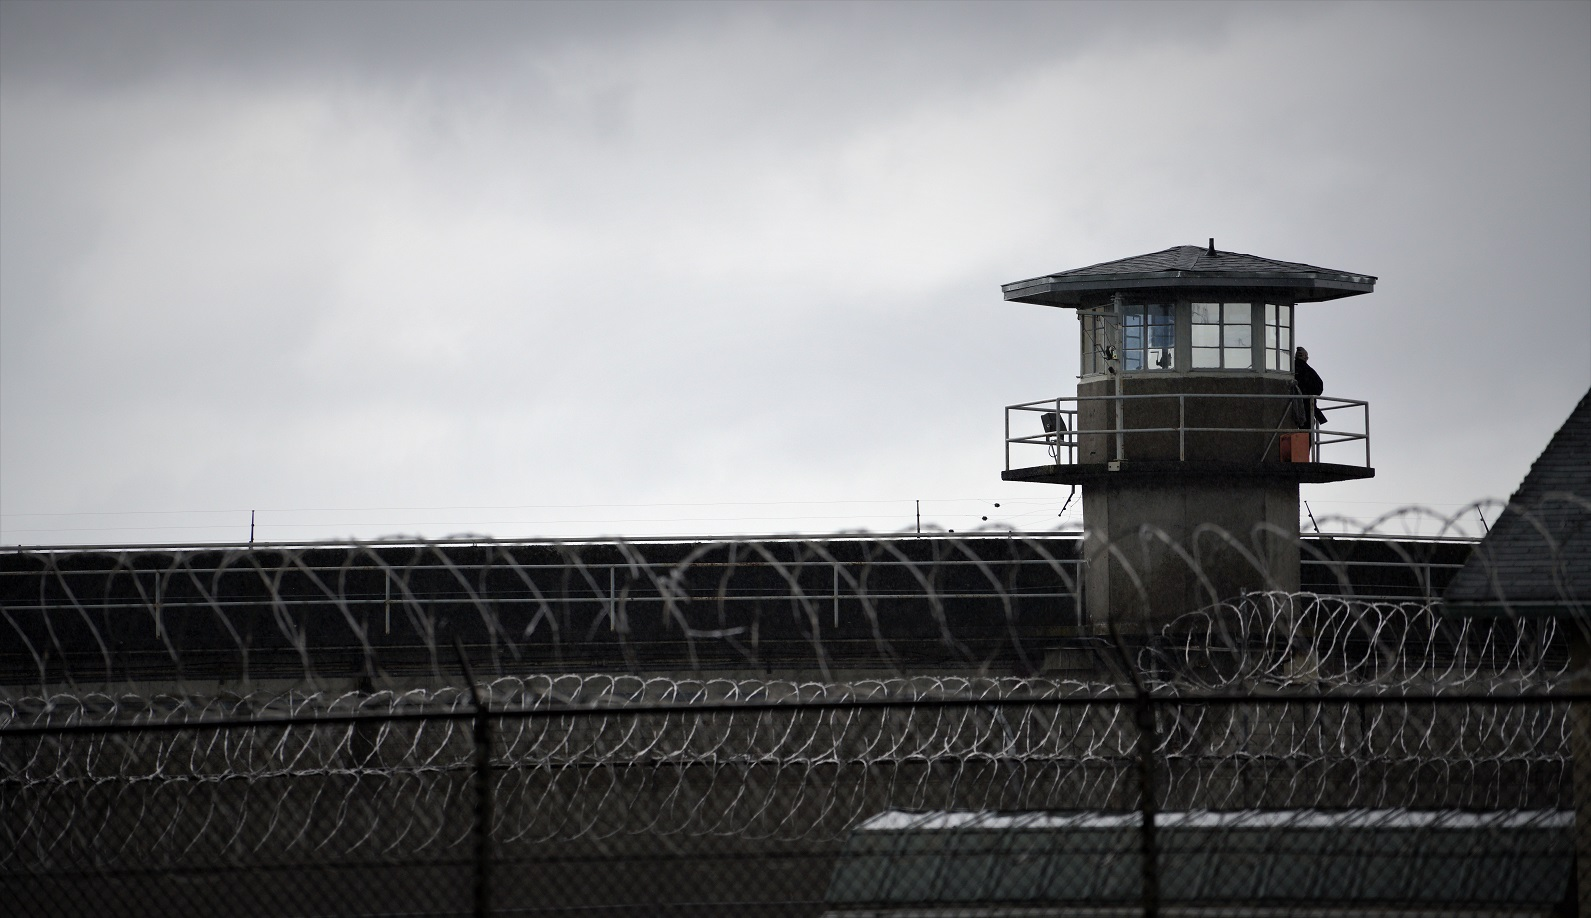 guard station state penitentiary barbed wire grey P52XKL2 #новости Коюа Накопия, Михаил Саакашвили